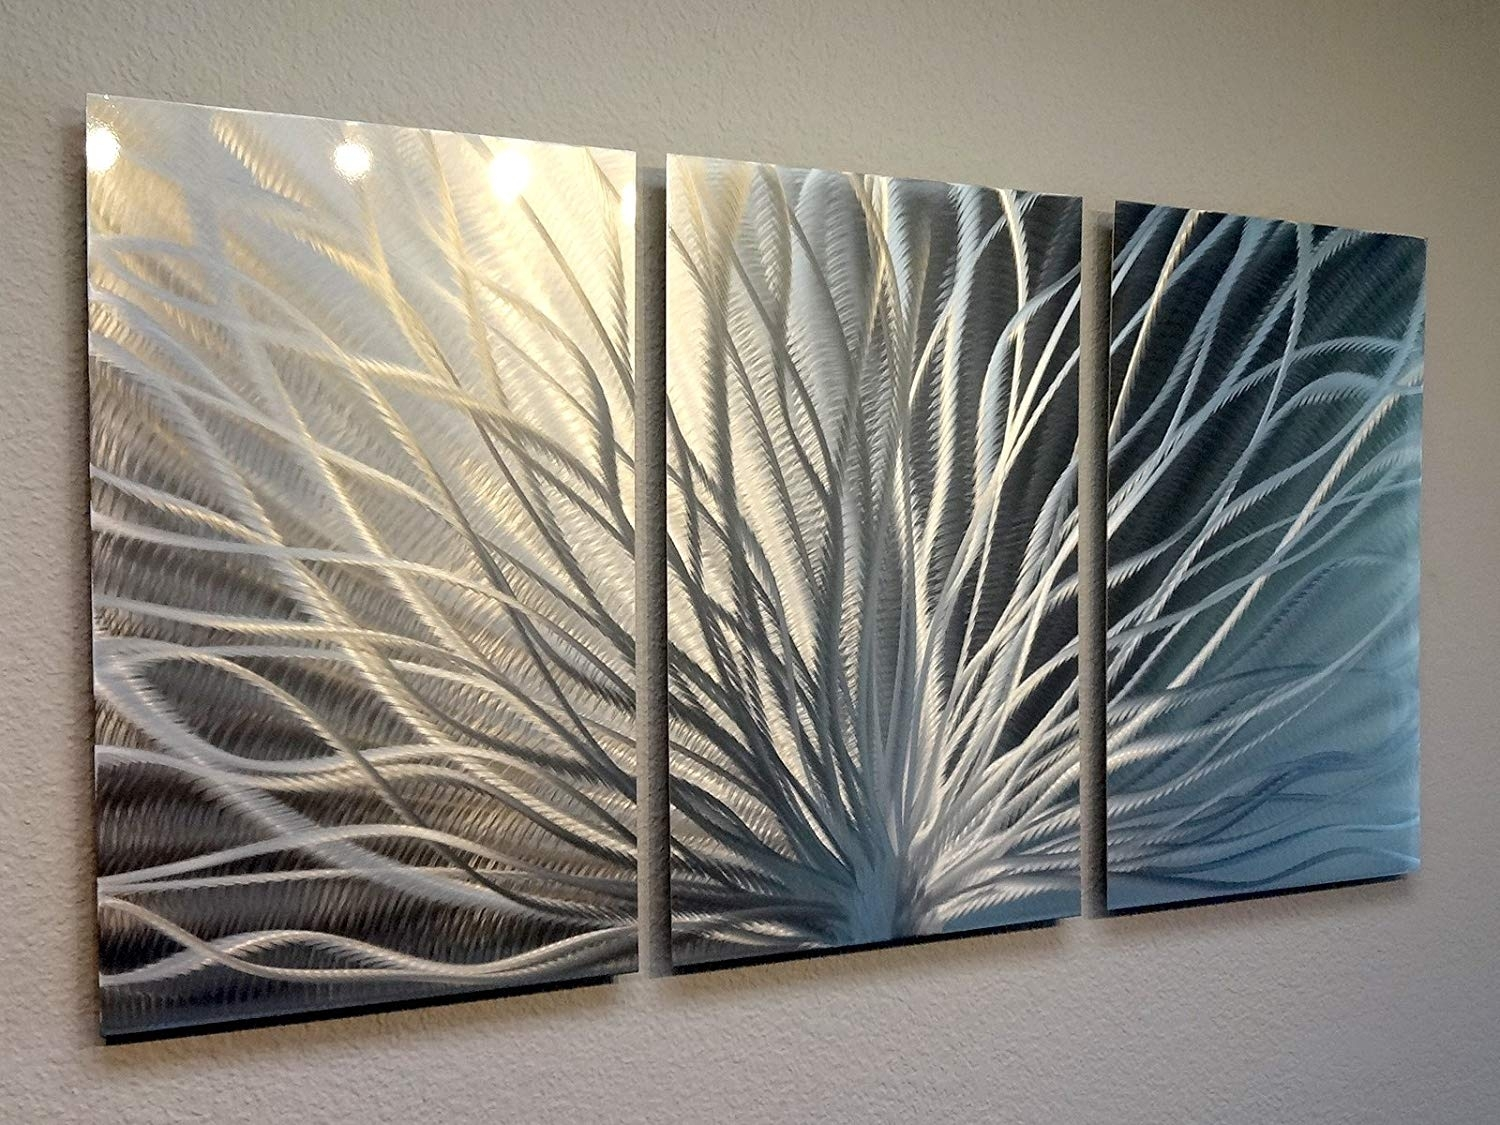 Amazon: Miles Shay Metal Wall Art, Modern Home Decor, Abstract within Abstract Wall Art (Image 7 of 20)